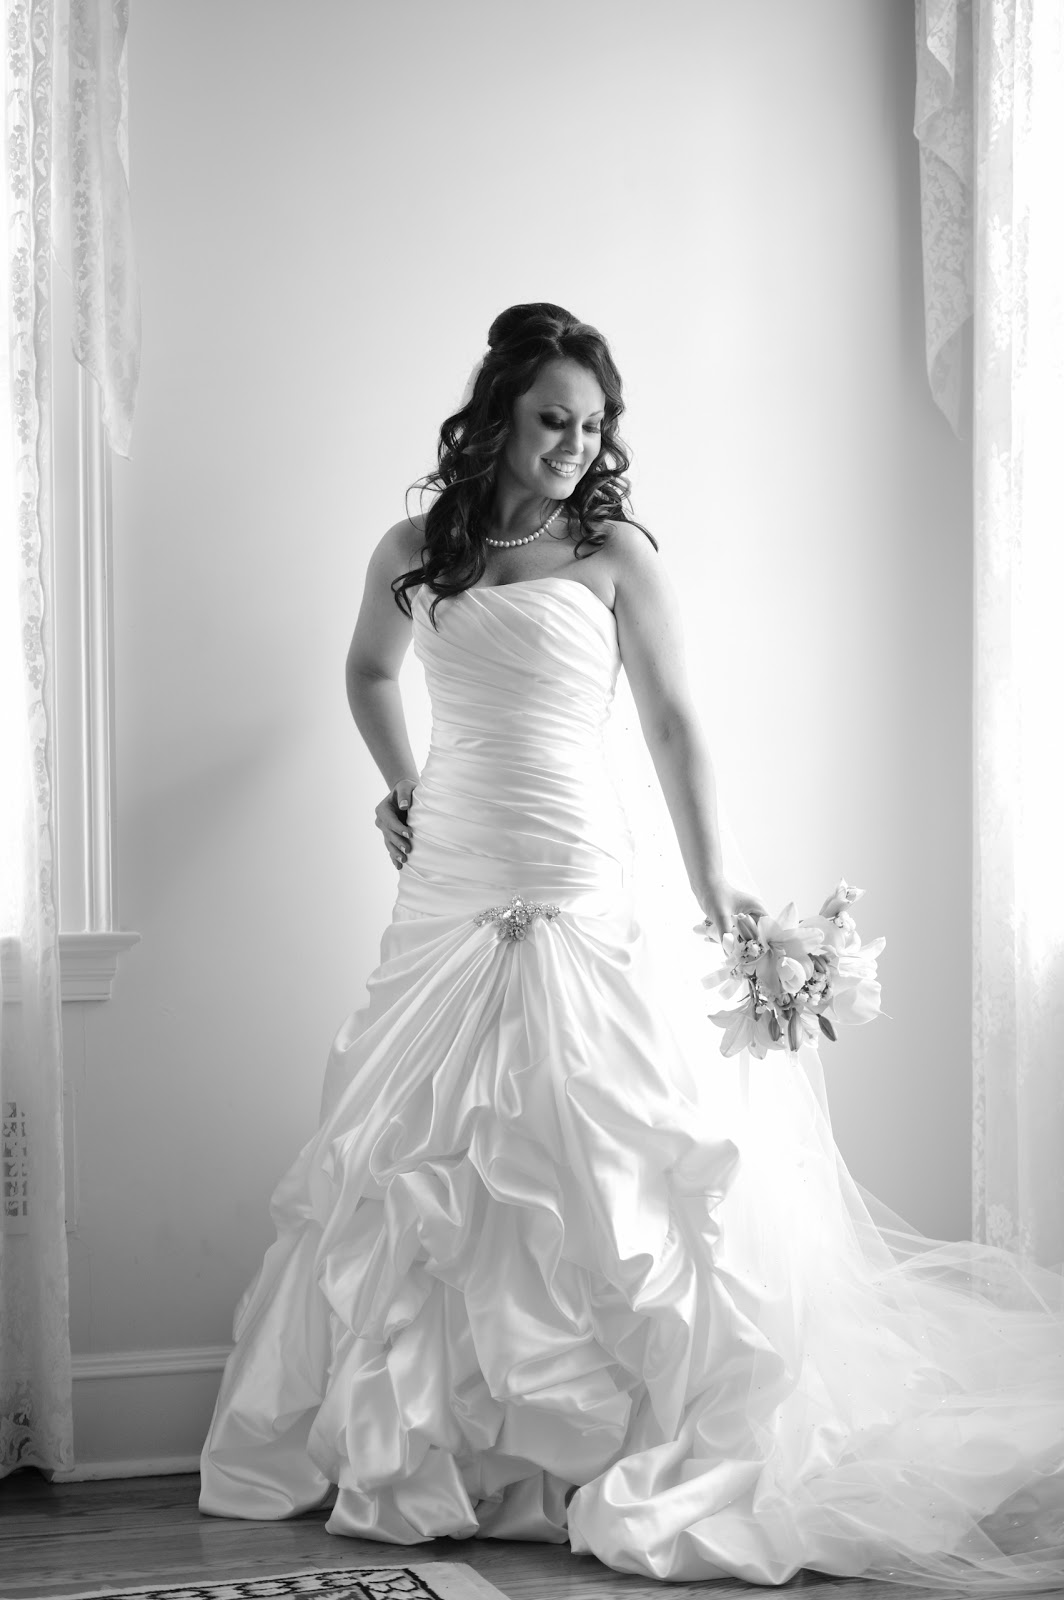 Cable Photography & Video: Ashley Mills - Wedding - Engagement ...